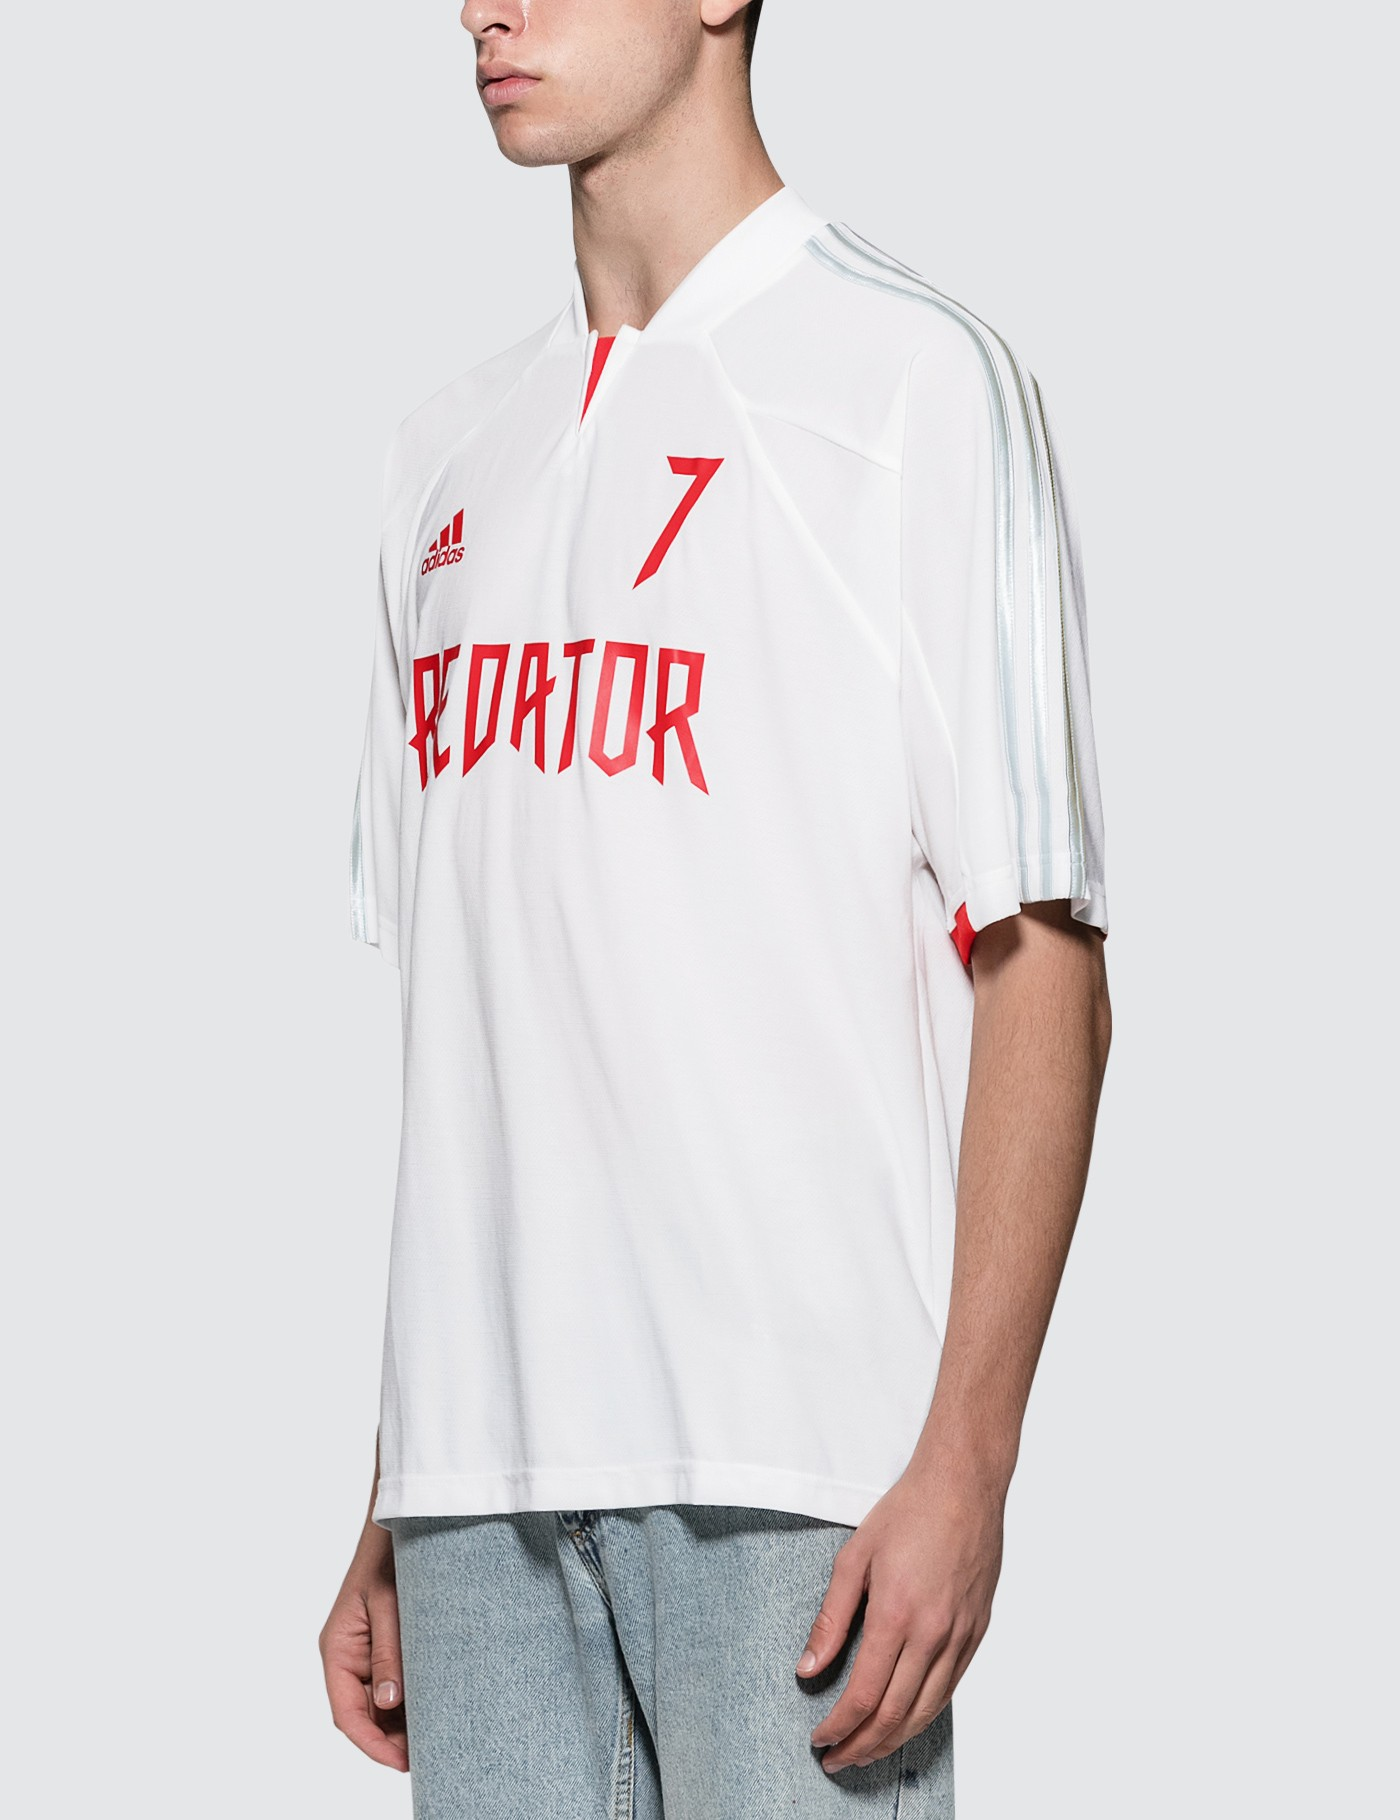 Adidas Originals Adidas Football Pre DB Jersey